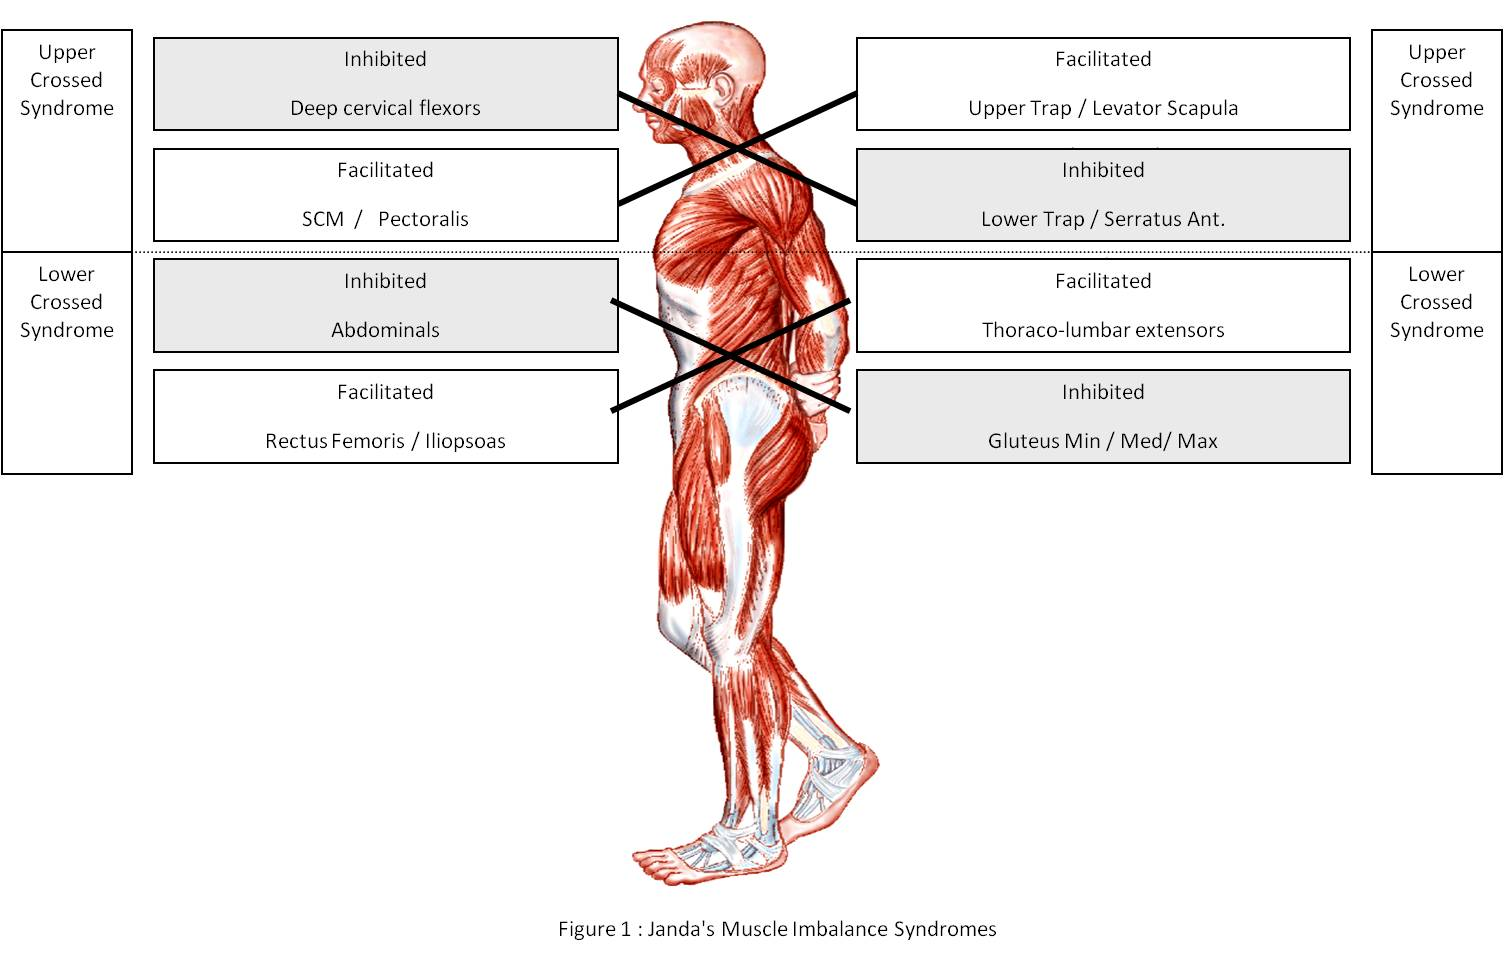 Poor Posture and Upper and Lower Crossed Syndromes